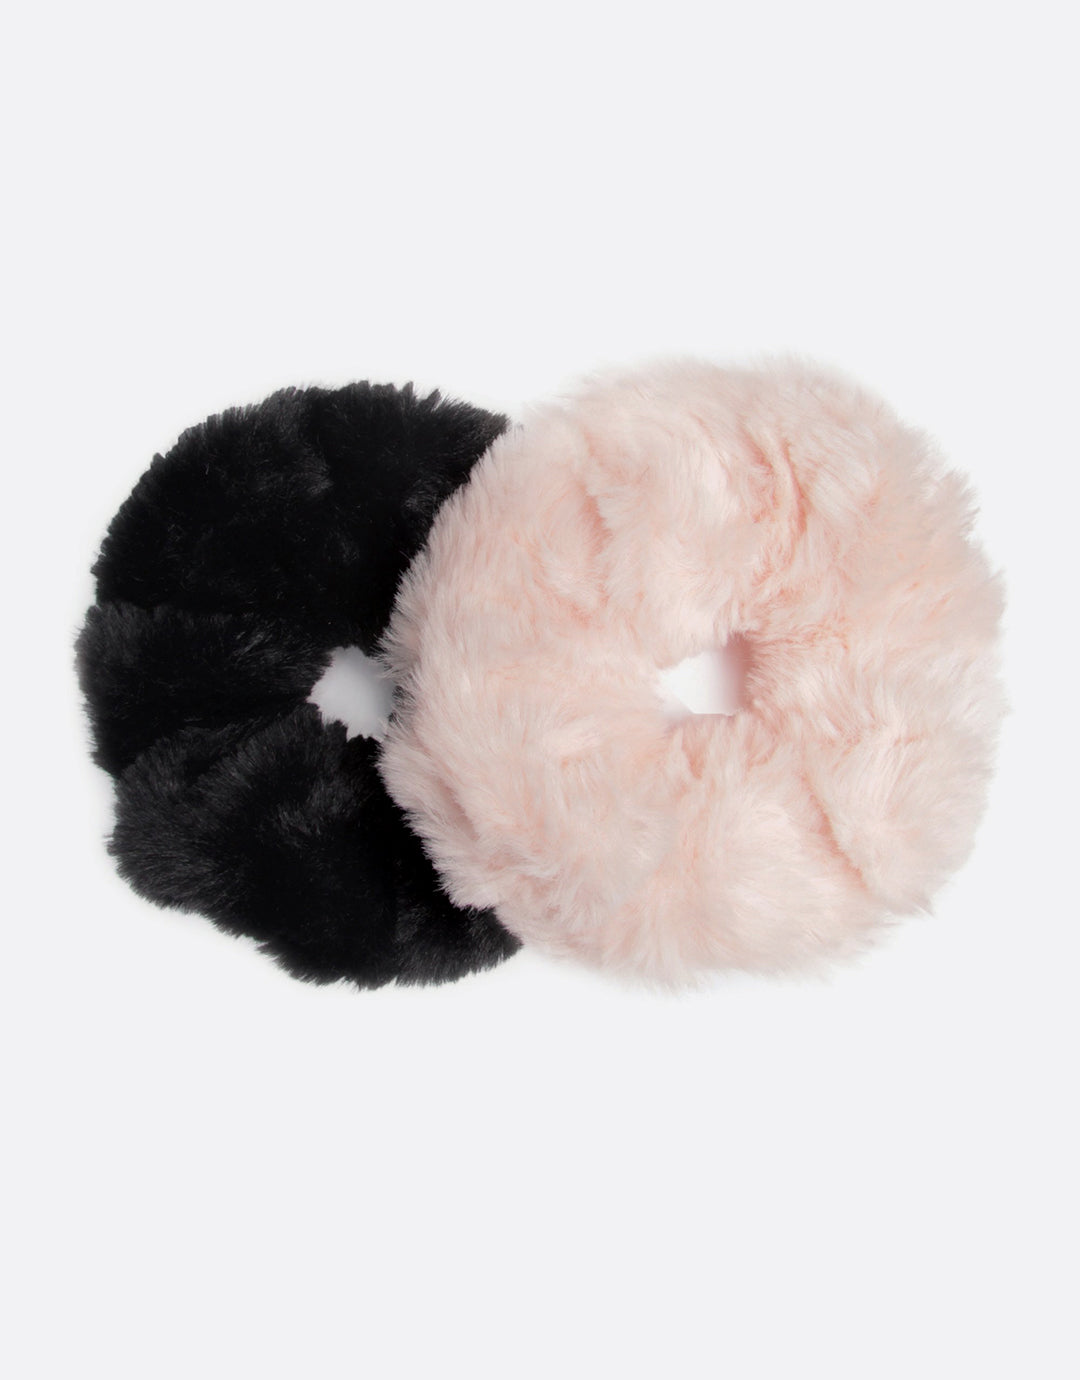 BANDED Women's Premium Hair Accessories - Moonlight + Shadow - 2 Pack Extra Large Fur Scrunchies